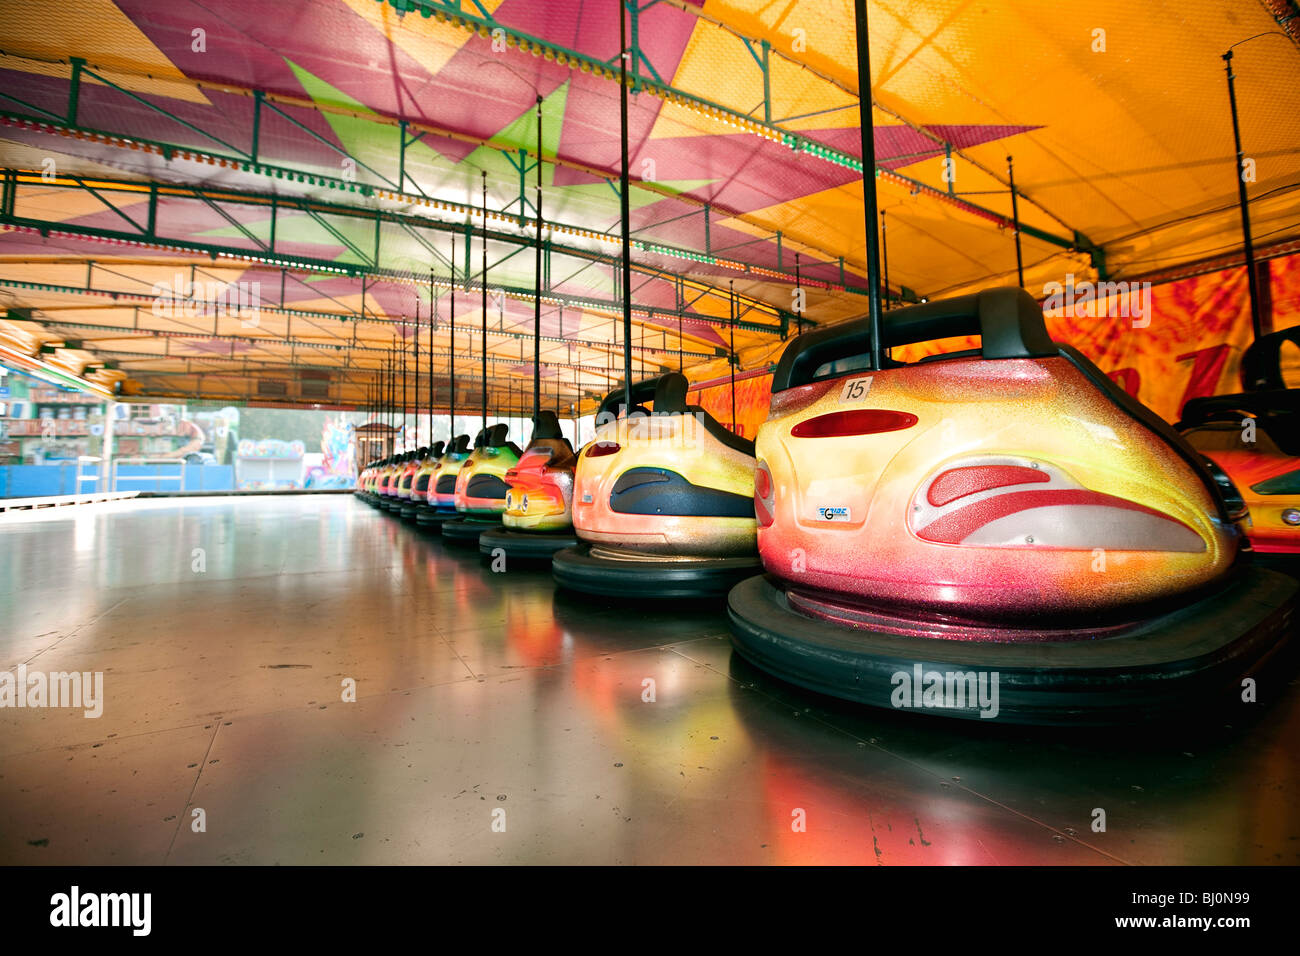 bumper cars lined up at the Munich Oktoberfest - Stock Image